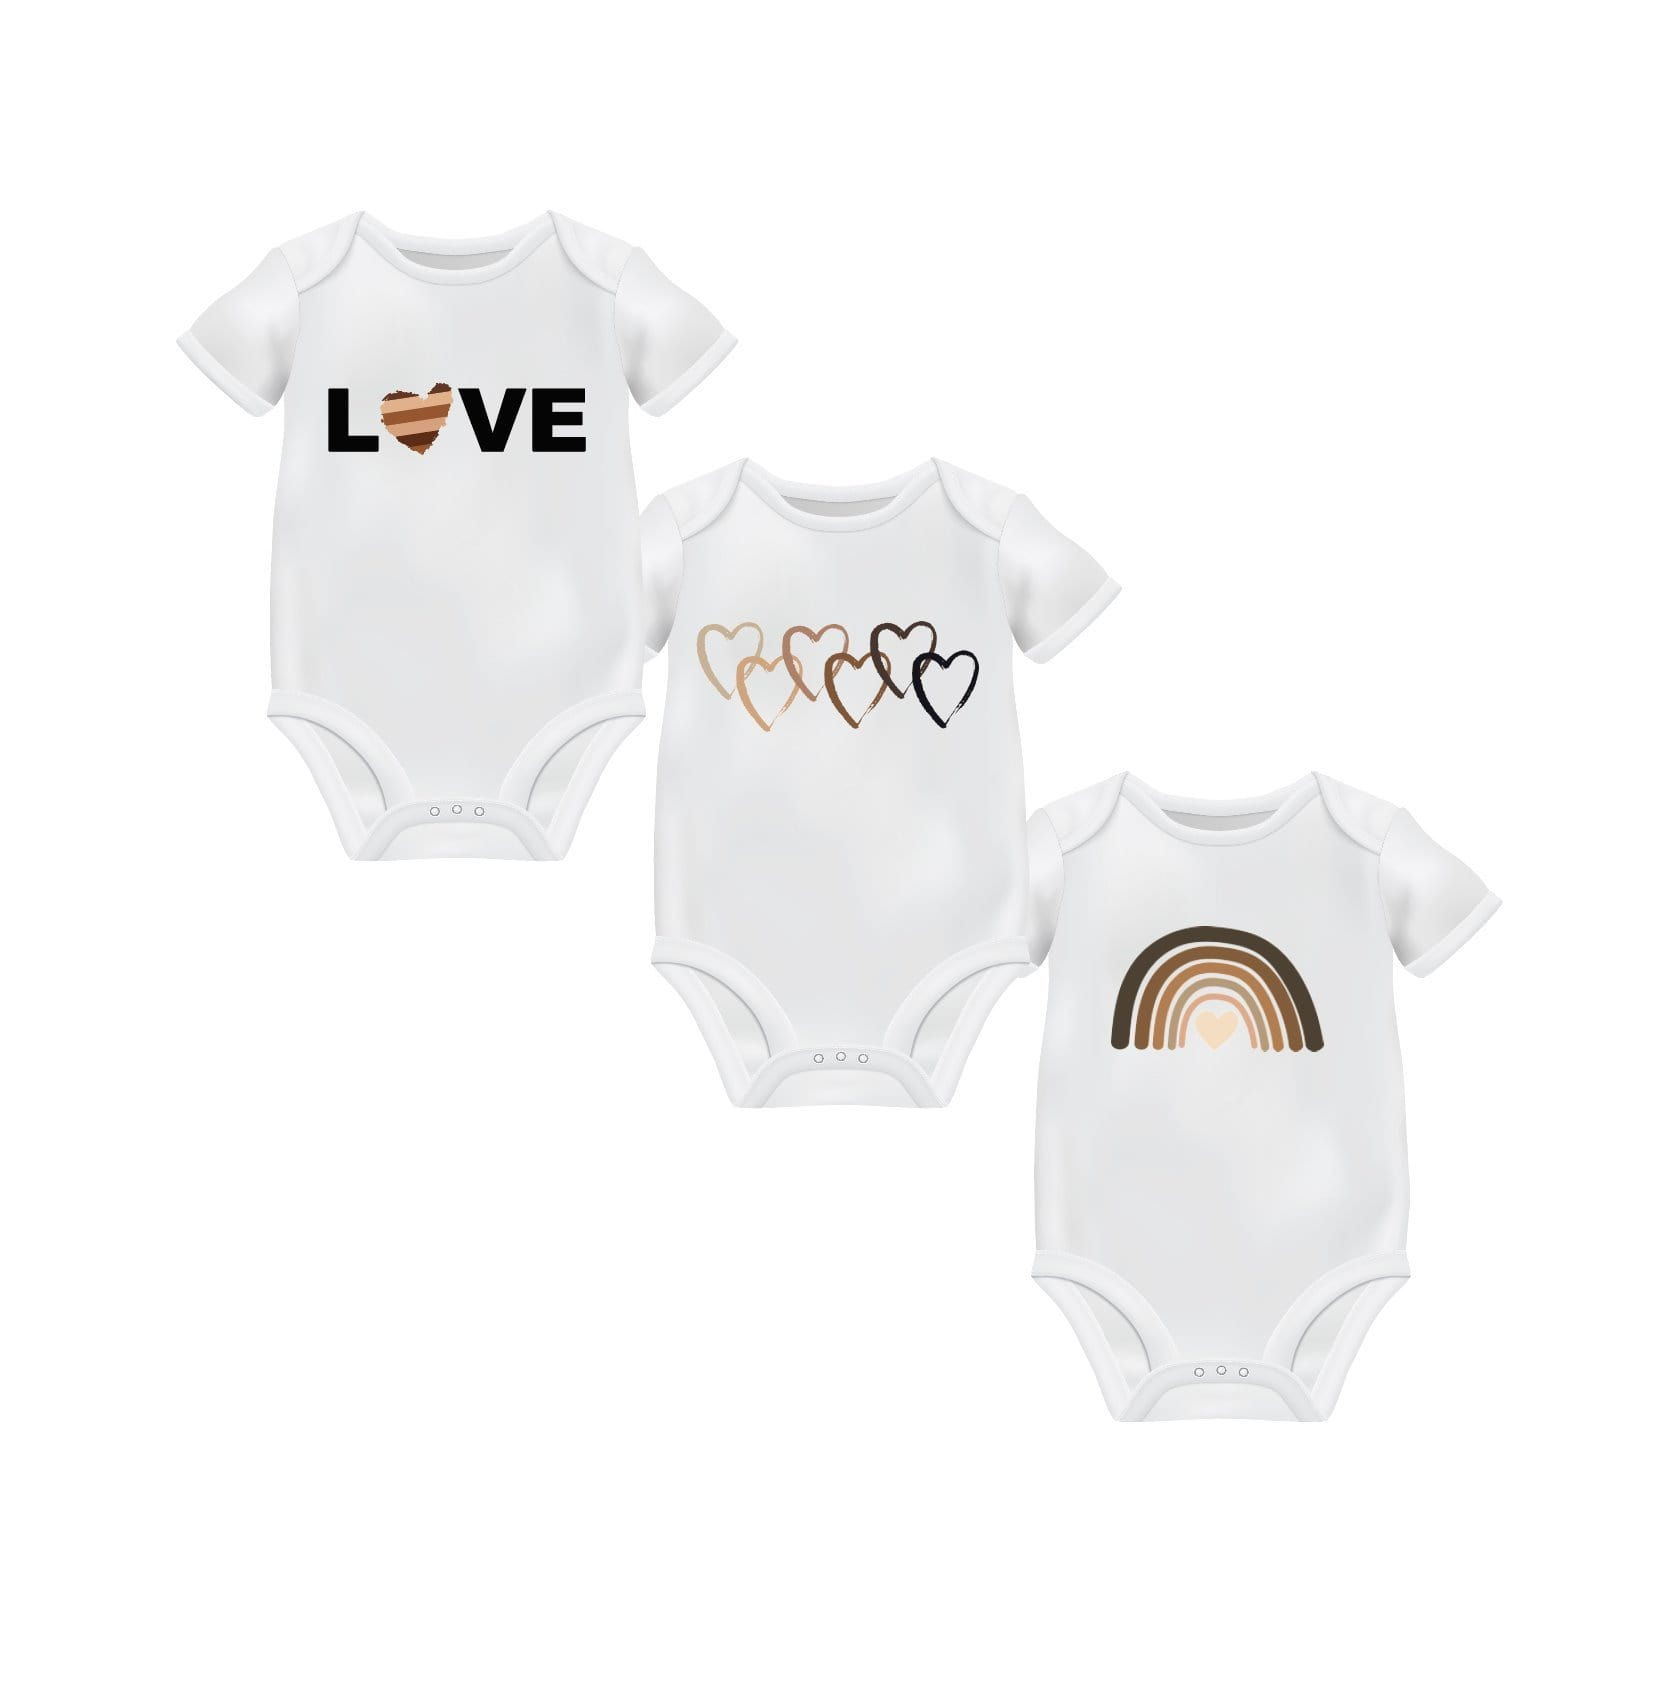 3 Pack Shades of Love Bodysuits for Infants and Babies